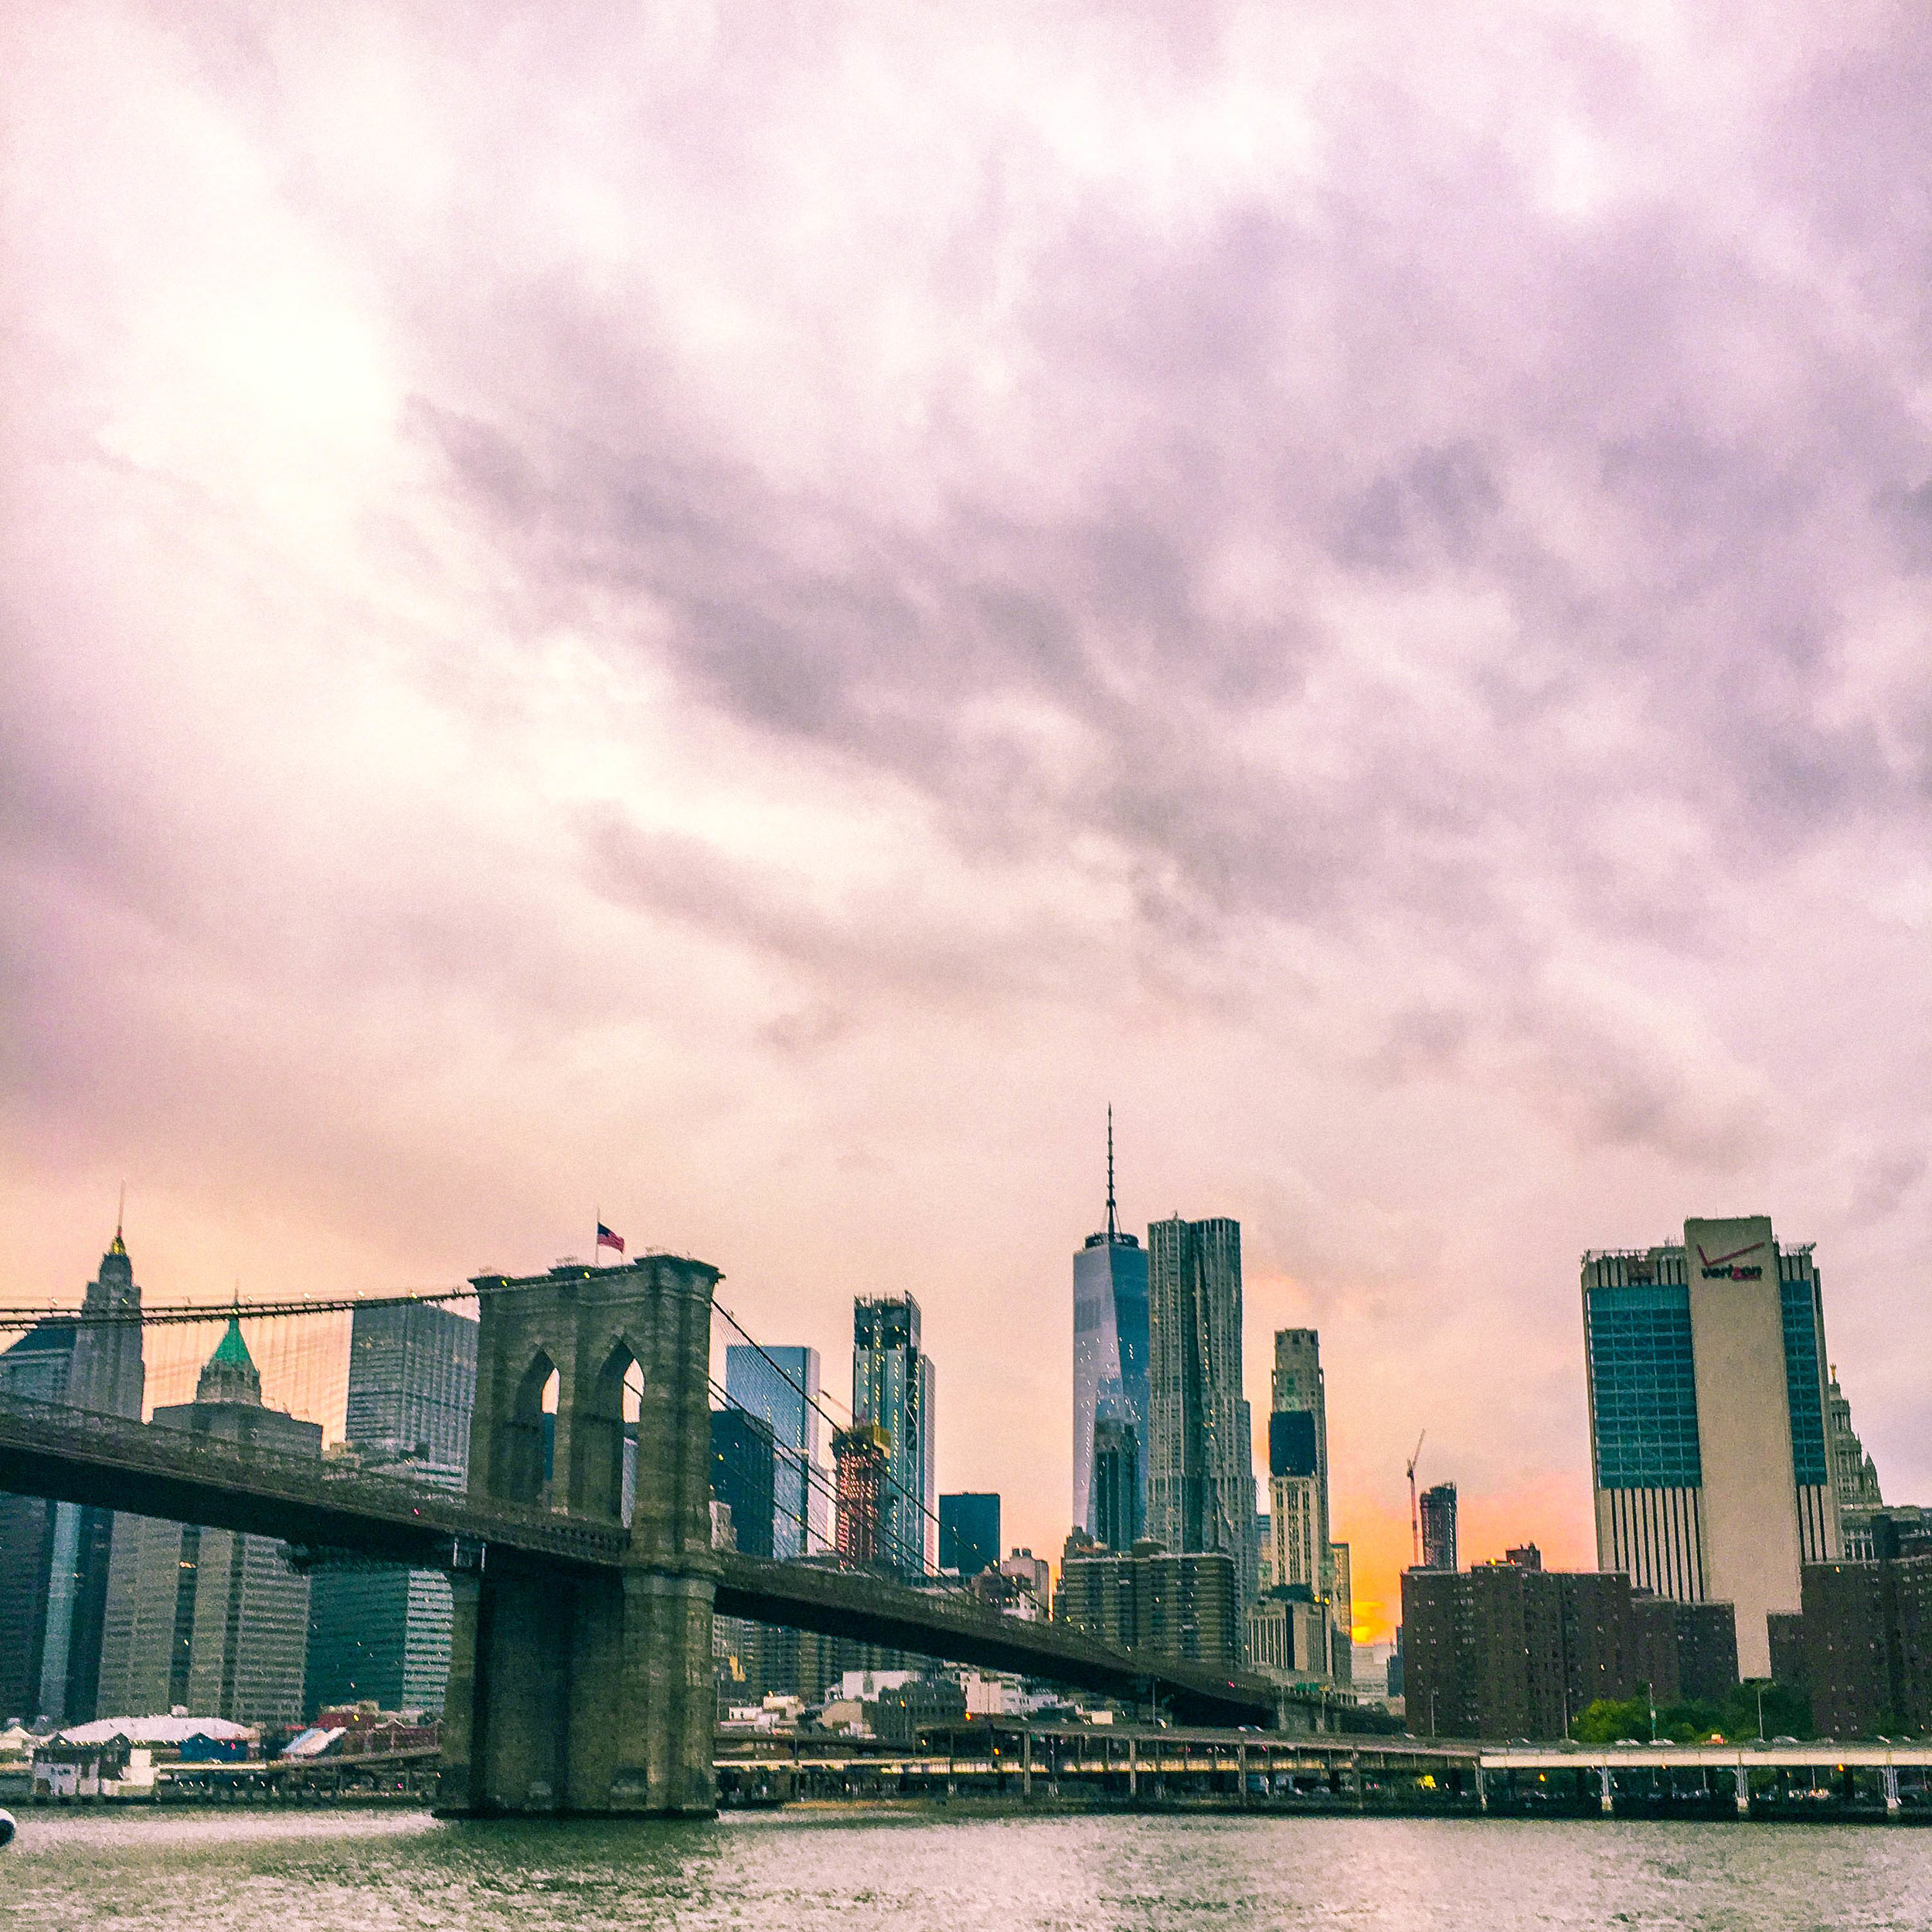 NEW YORK sunset Travel | 2017 Travel Year in Review + Travel and Blog Goals for 2018 | goseekexplore.com